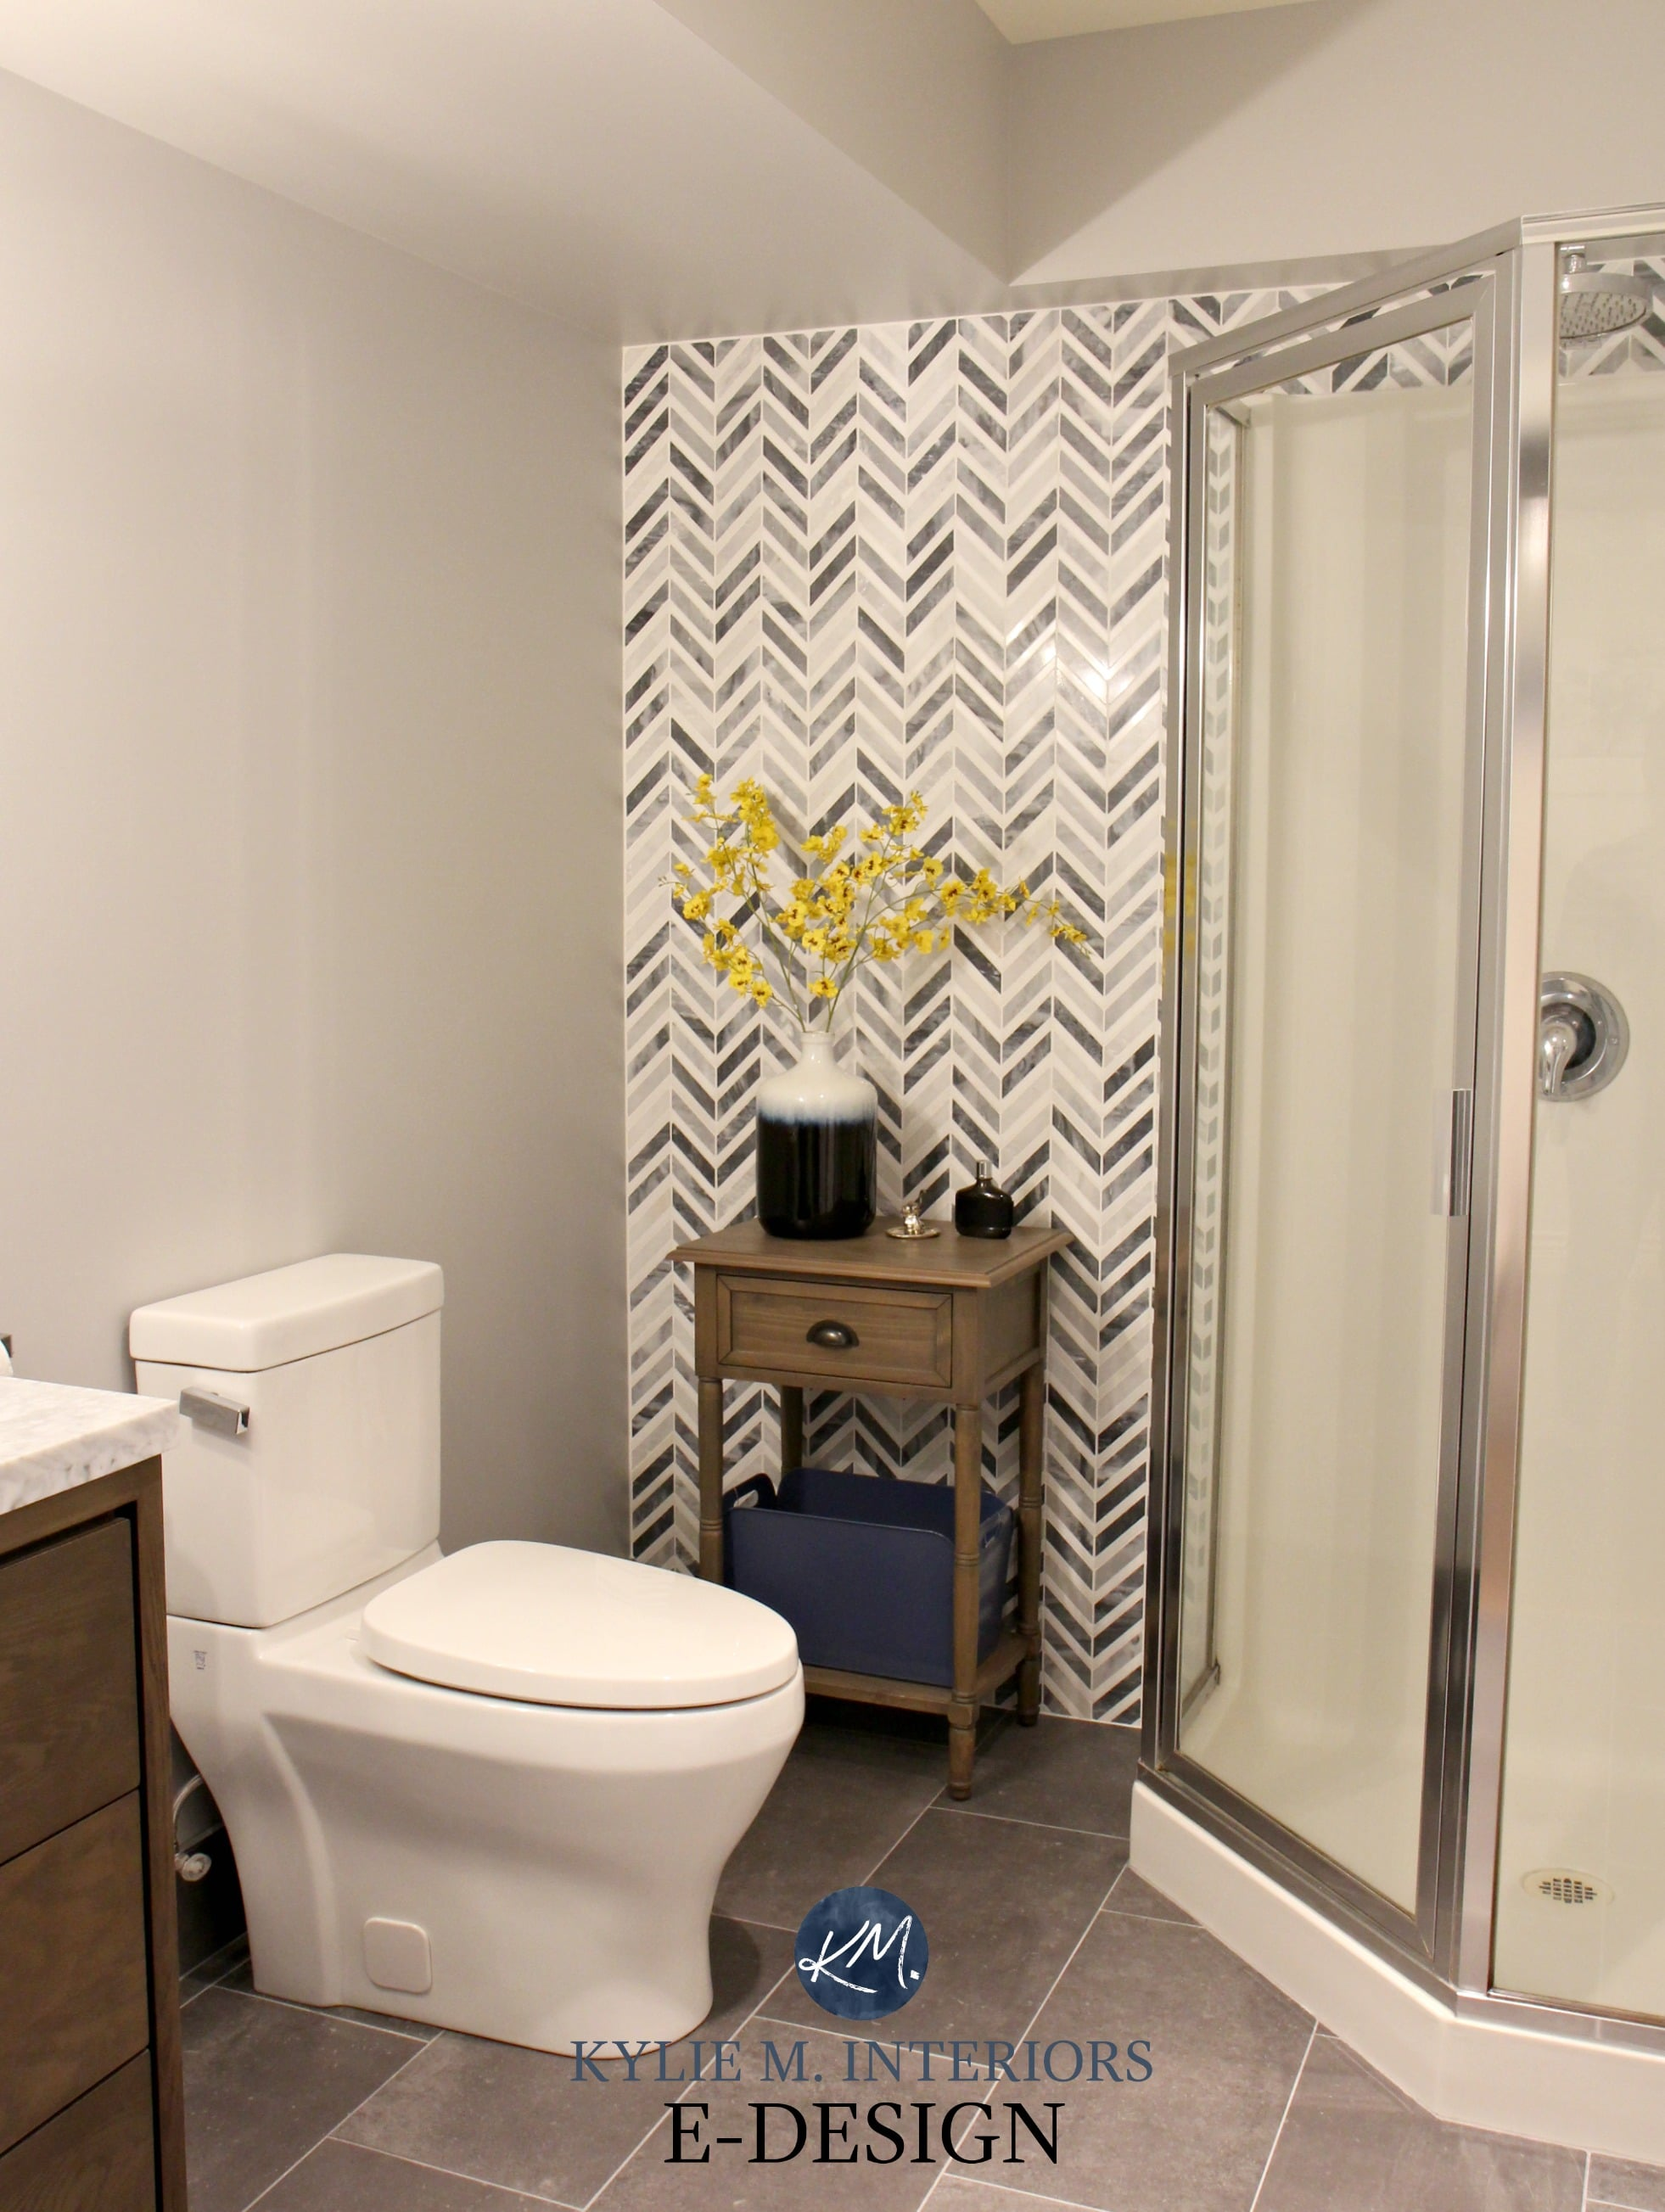 Herringbone Or Chevron Gray Marble Accent Tile In Small Bathroom With Corner Shower Feature Wall Kylie M Interiors E Design